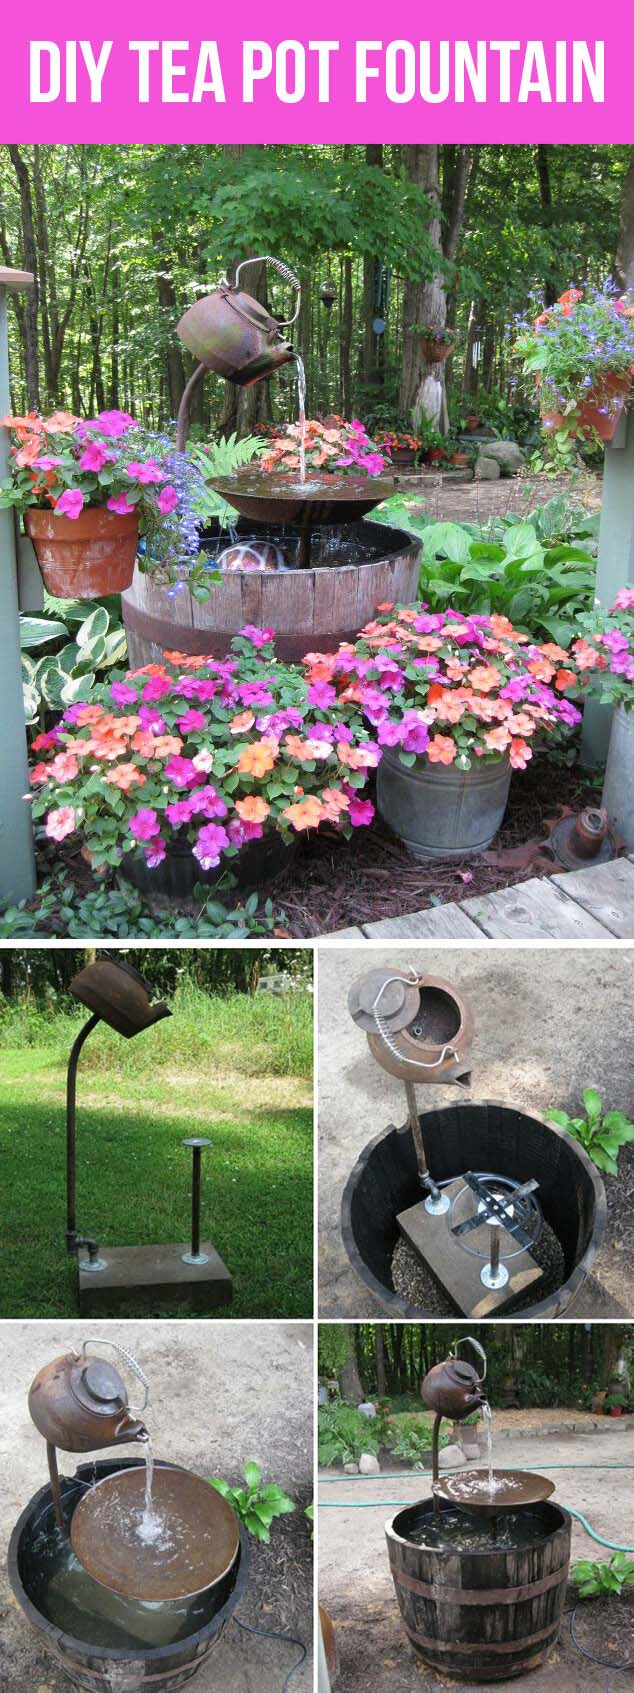 Tippy Tea Pot and Wooden Barrel Fountain #diy #waterfeature #backyard #garden #decorhomeideas